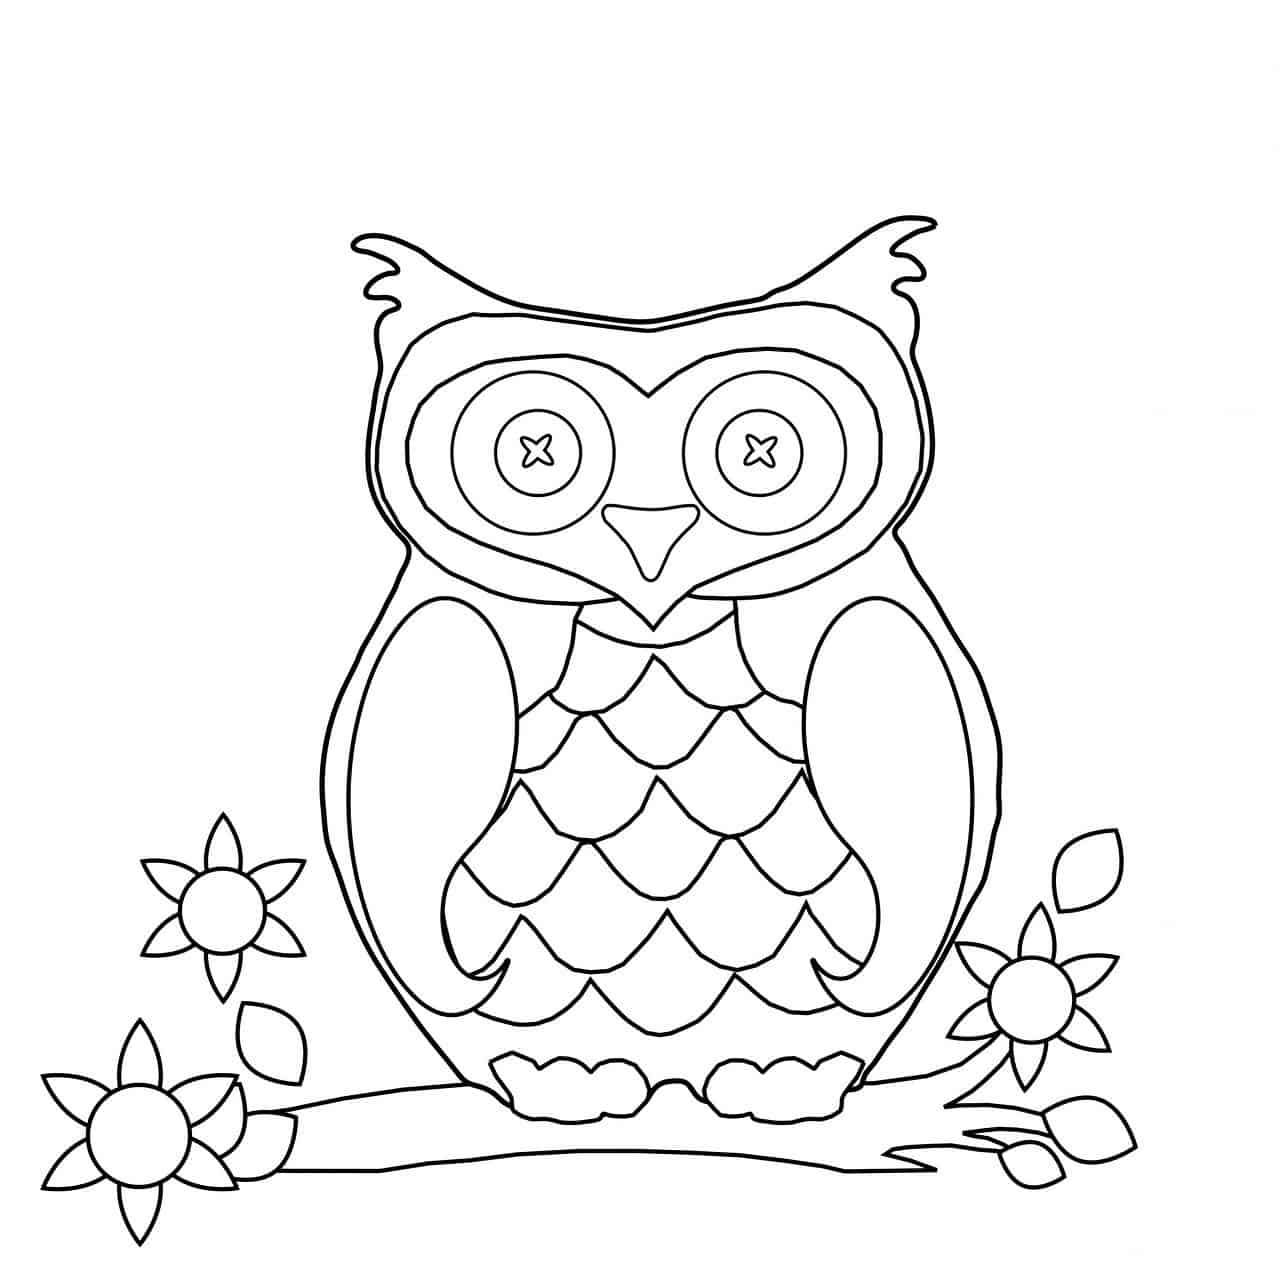 printable colouring pages for girls free printable coloring pages for girls girls pages printable colouring for 1 1